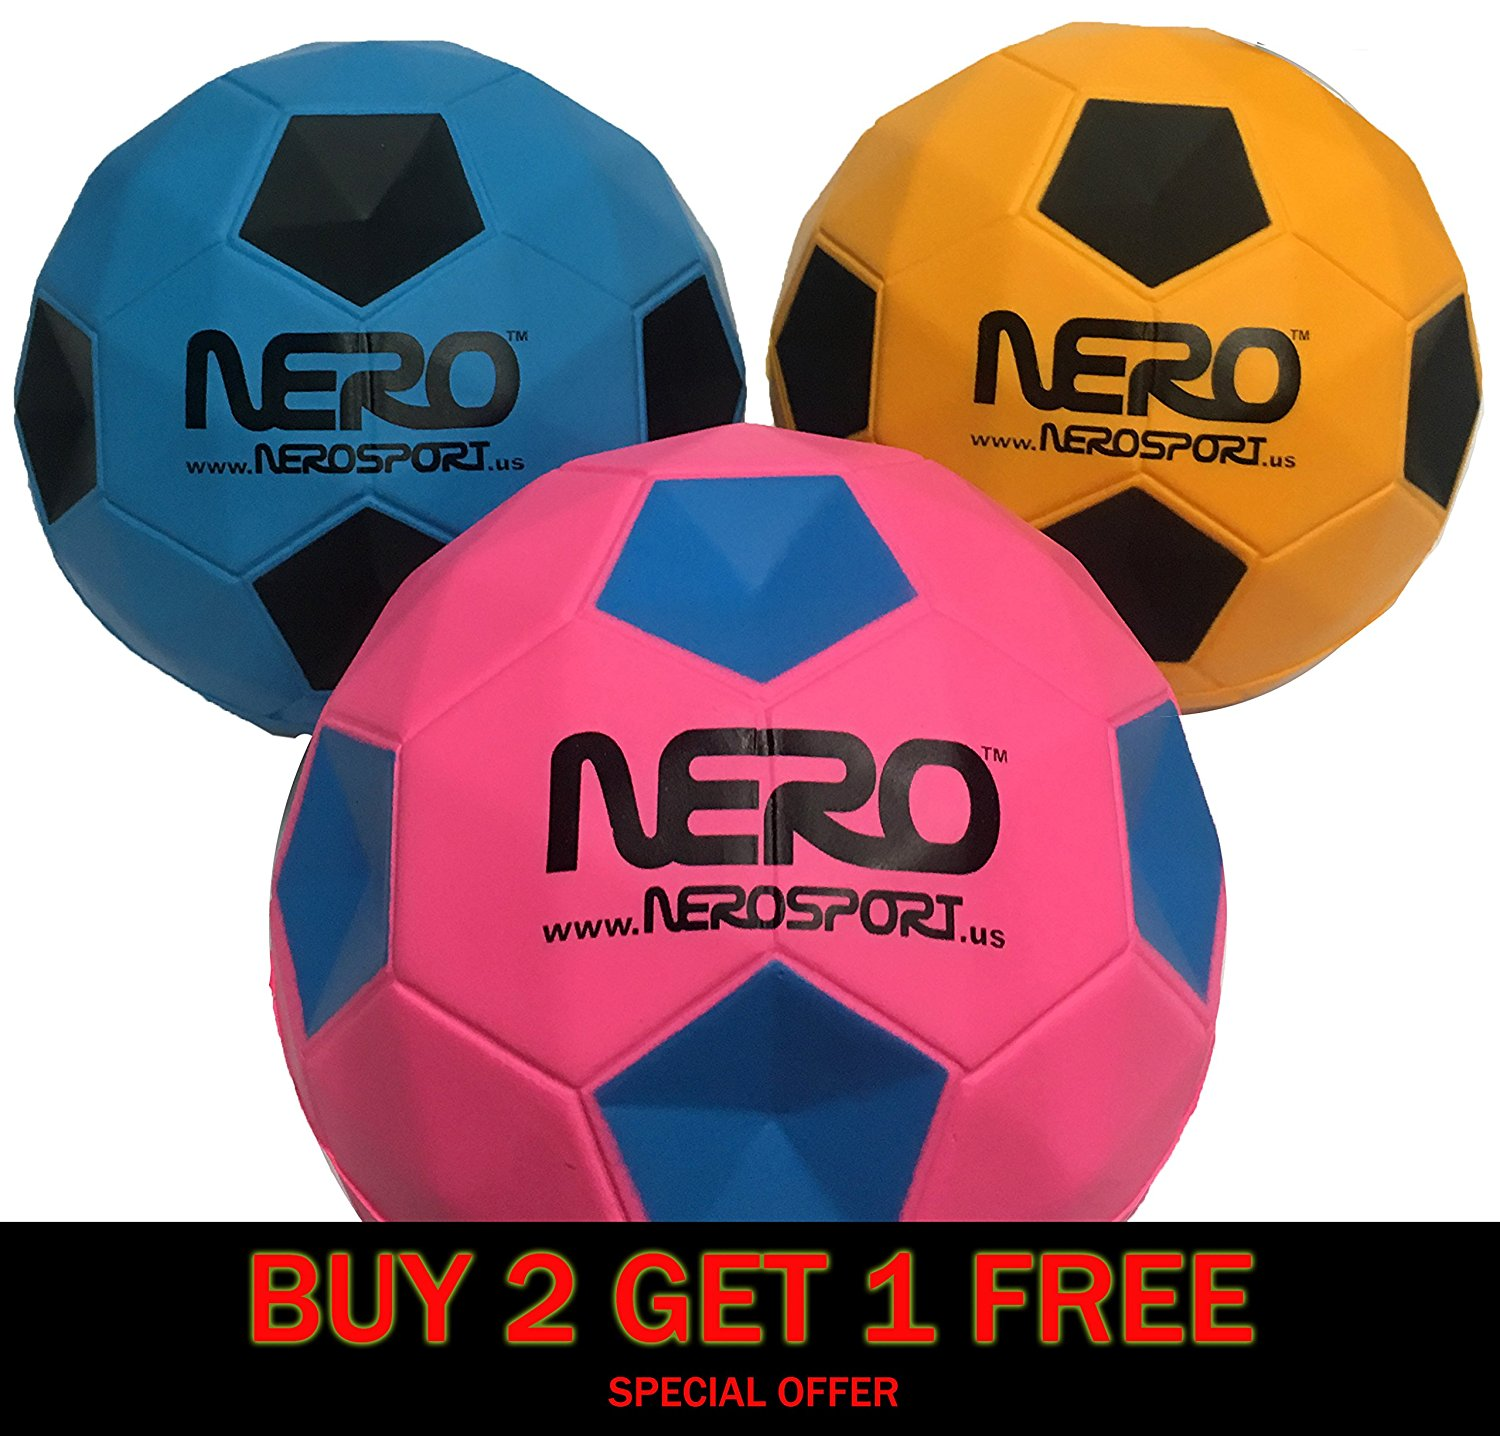 INGEAR Nero NS-R12 Rubber High Bounce Agility Toy Ball 4.7 inch Our Biggest High Bounce Ball Yet Great For the Streets Playground Park Back Yard Agility Ball Bulk Price Birthdays Summer Ball